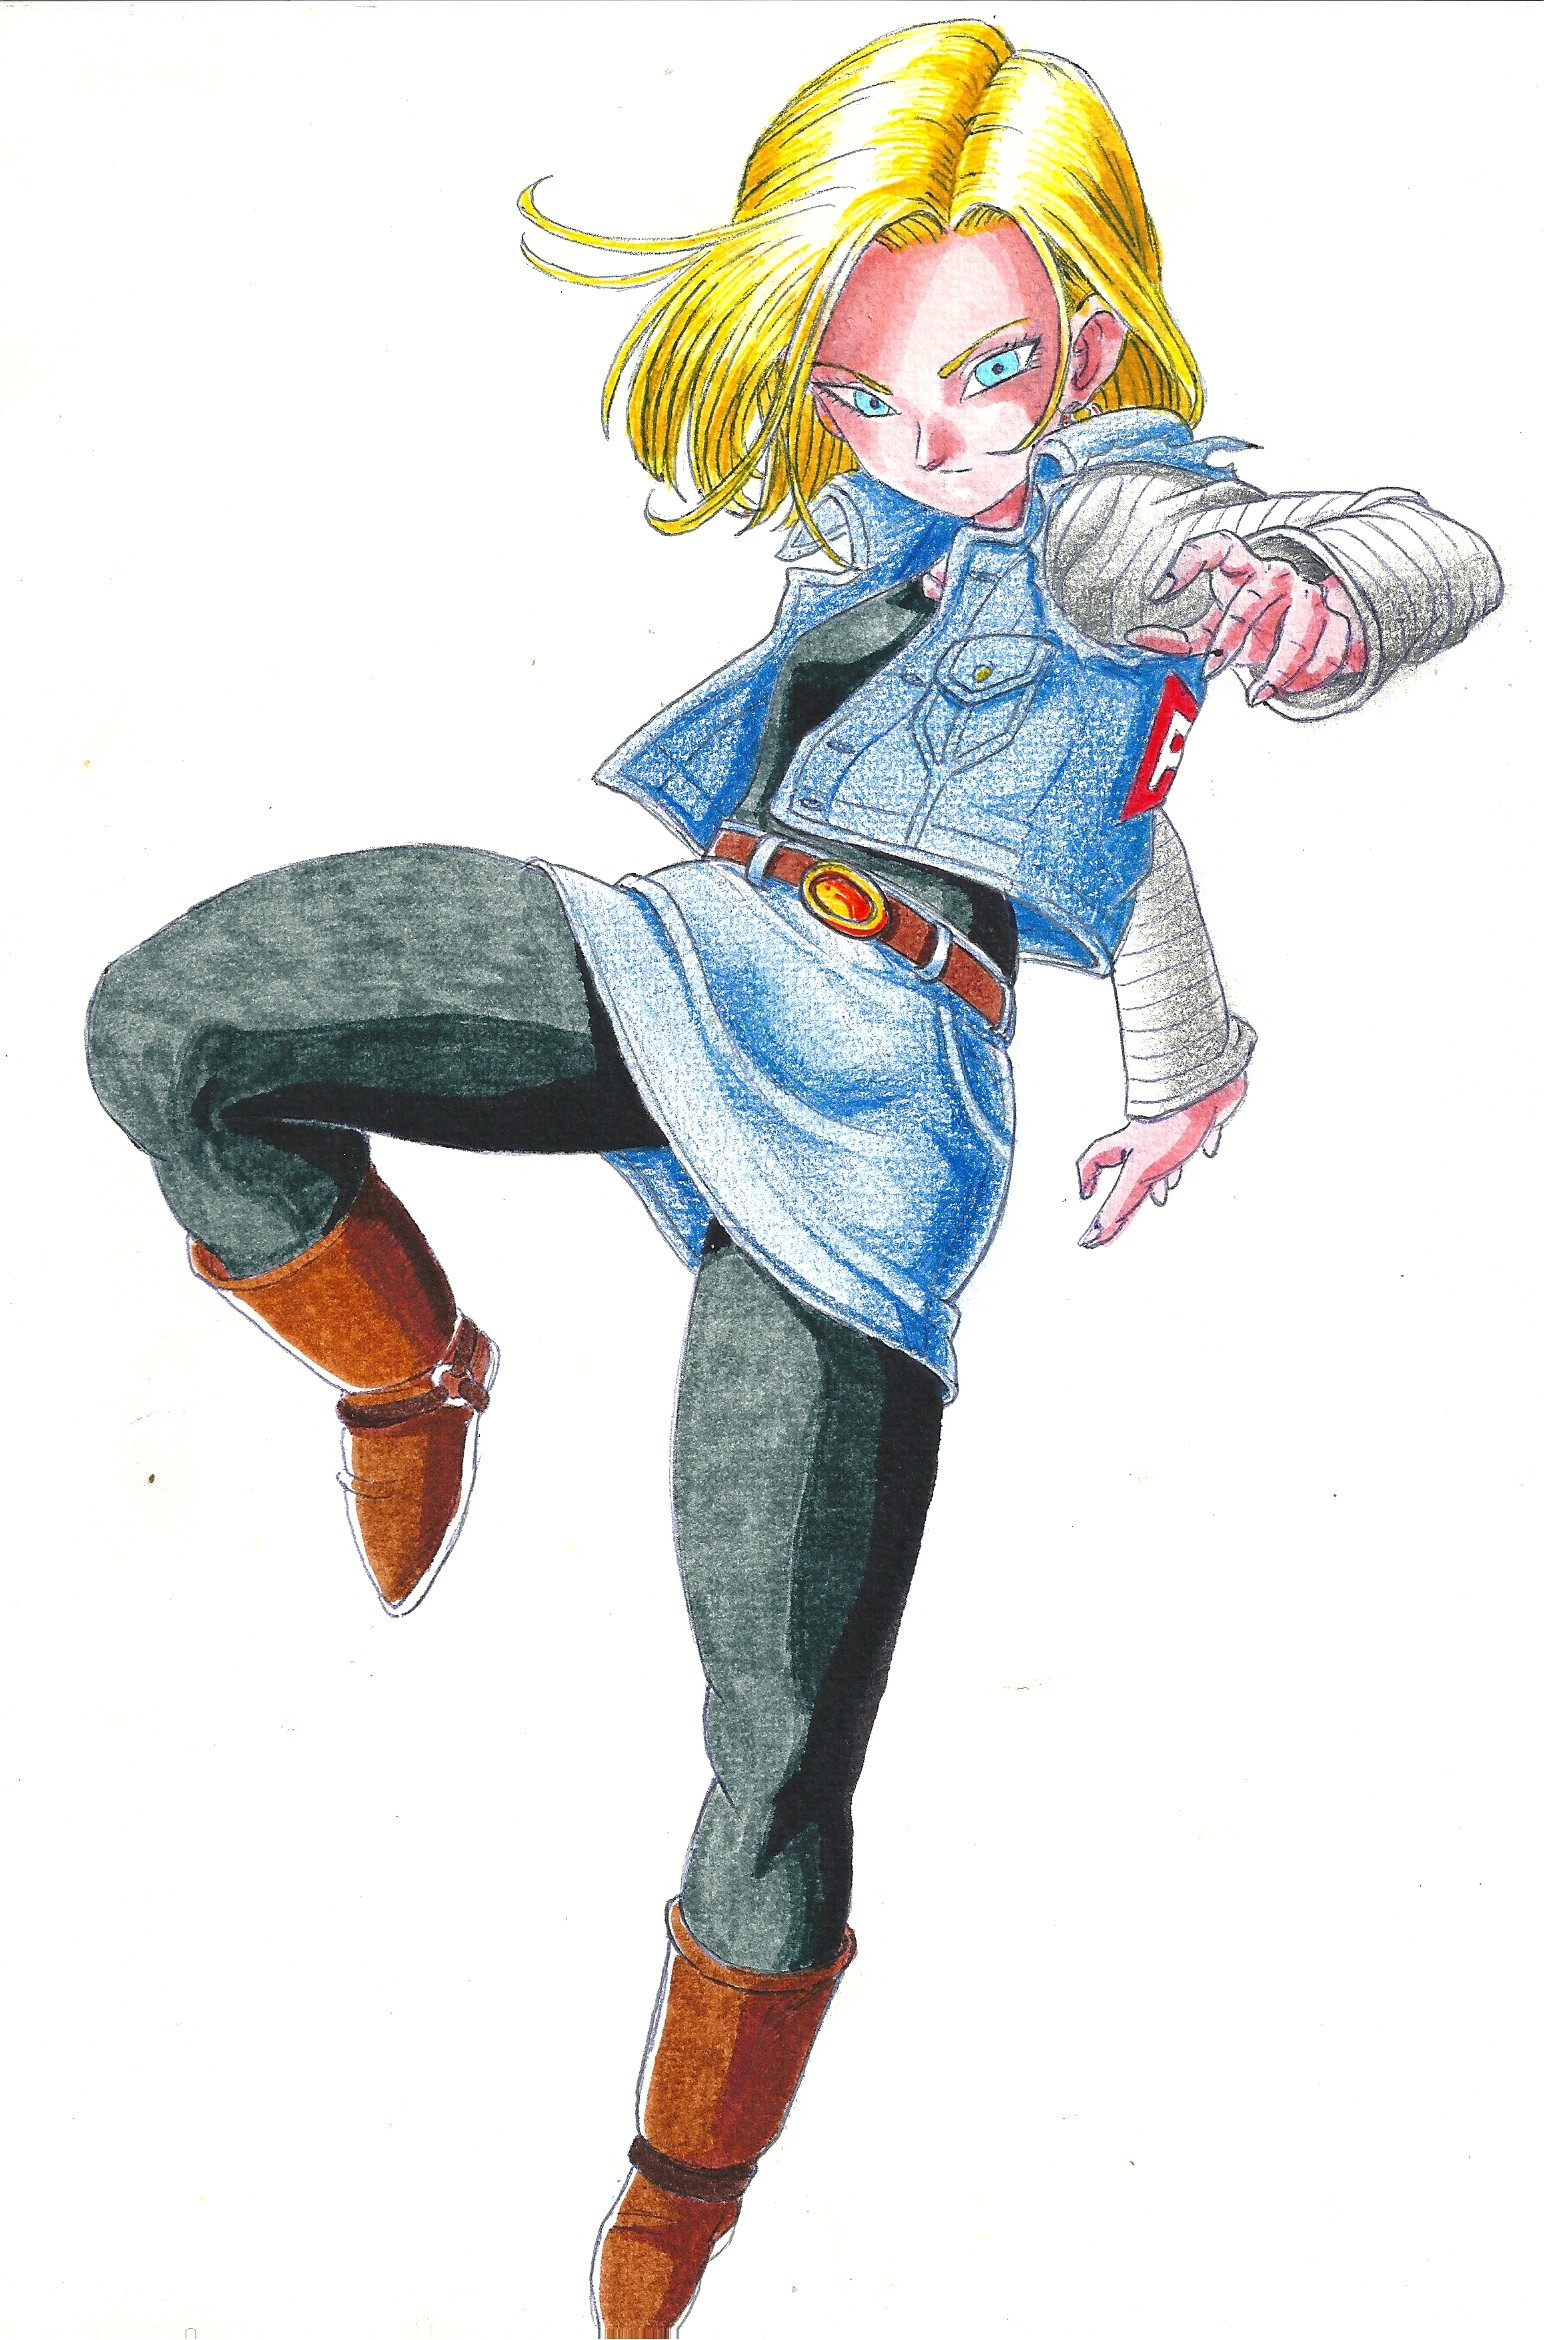 android_18_ready_to_kick_your_head_by_acid_flo-d4ggr62.jpg